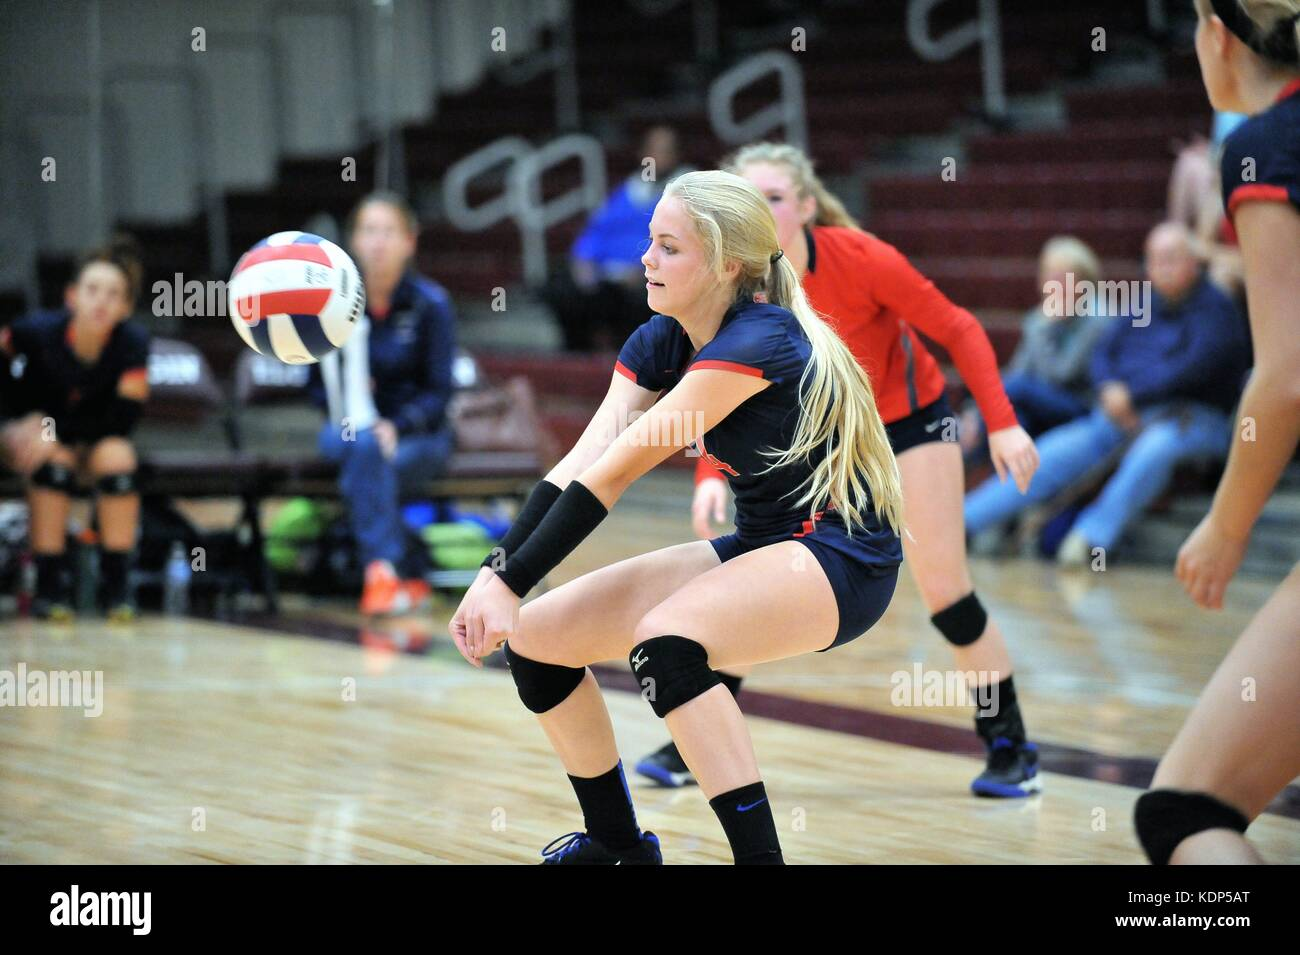 Player executing a service return during a high school volleyball match. USA. - Stock Image